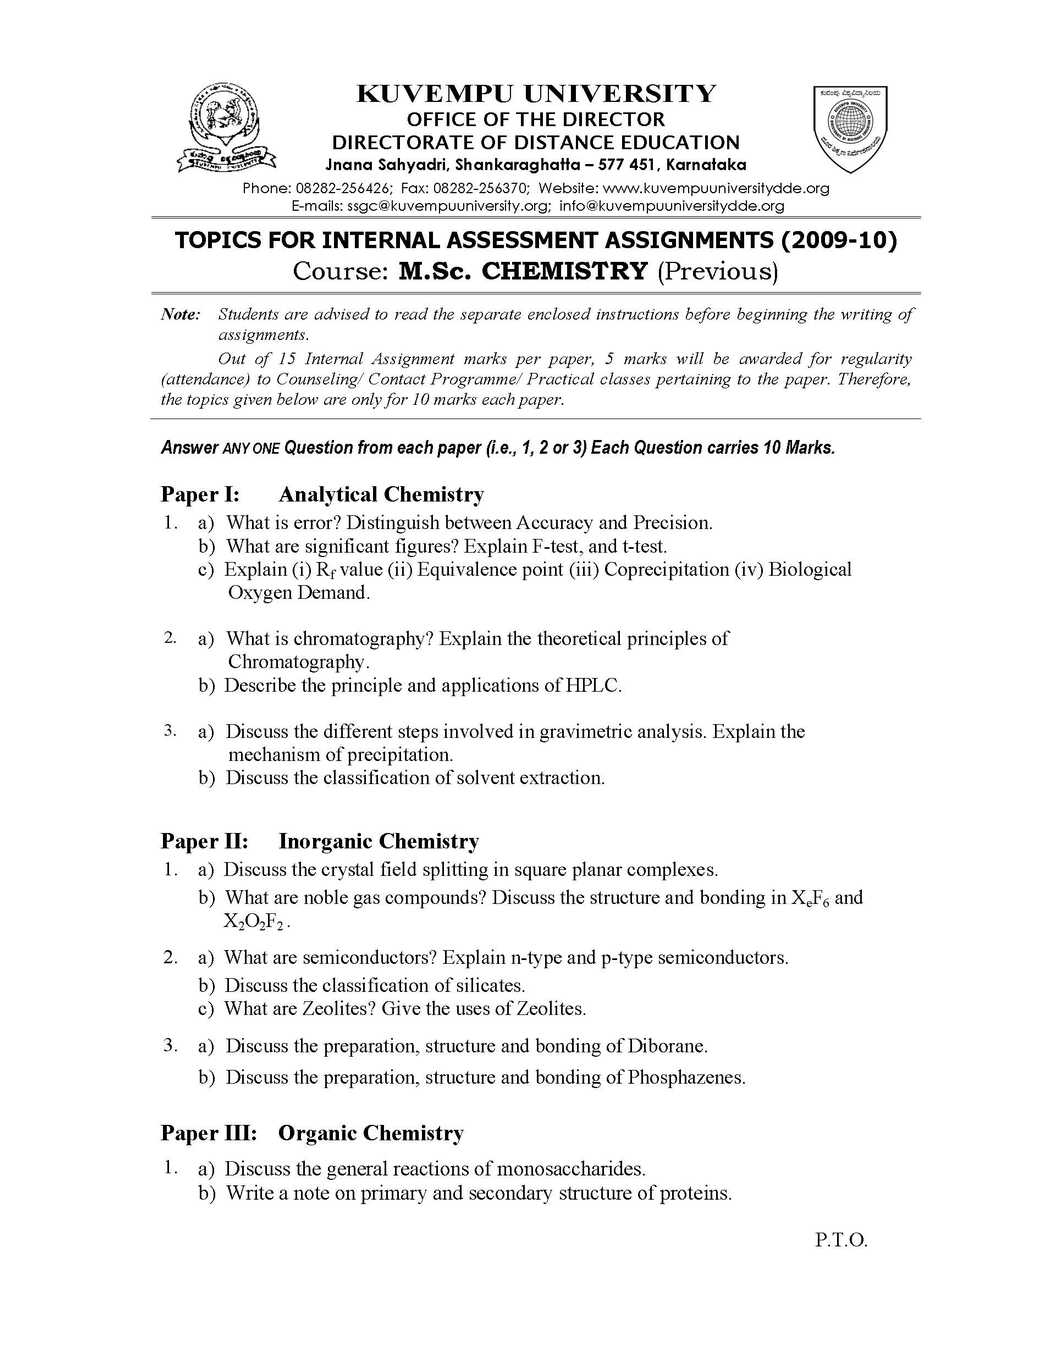 kuvempu university msc chemistry assignments 2017 2018 eduvark assignment question paper for msc chemistry program kuvempu university